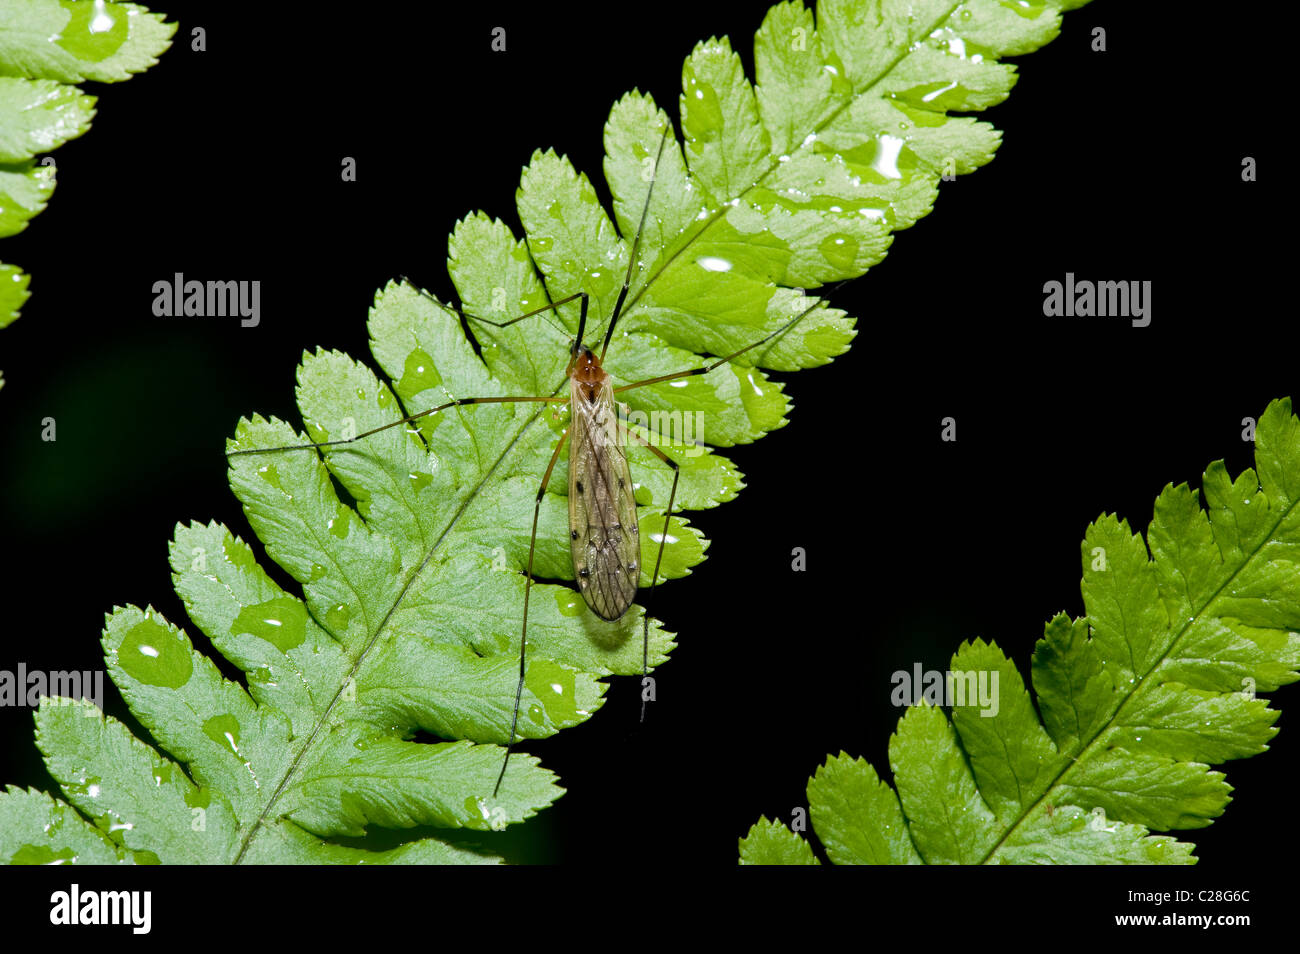 Cranefly (Limoniidae sp.), adult on a fern frond. - Stock Image